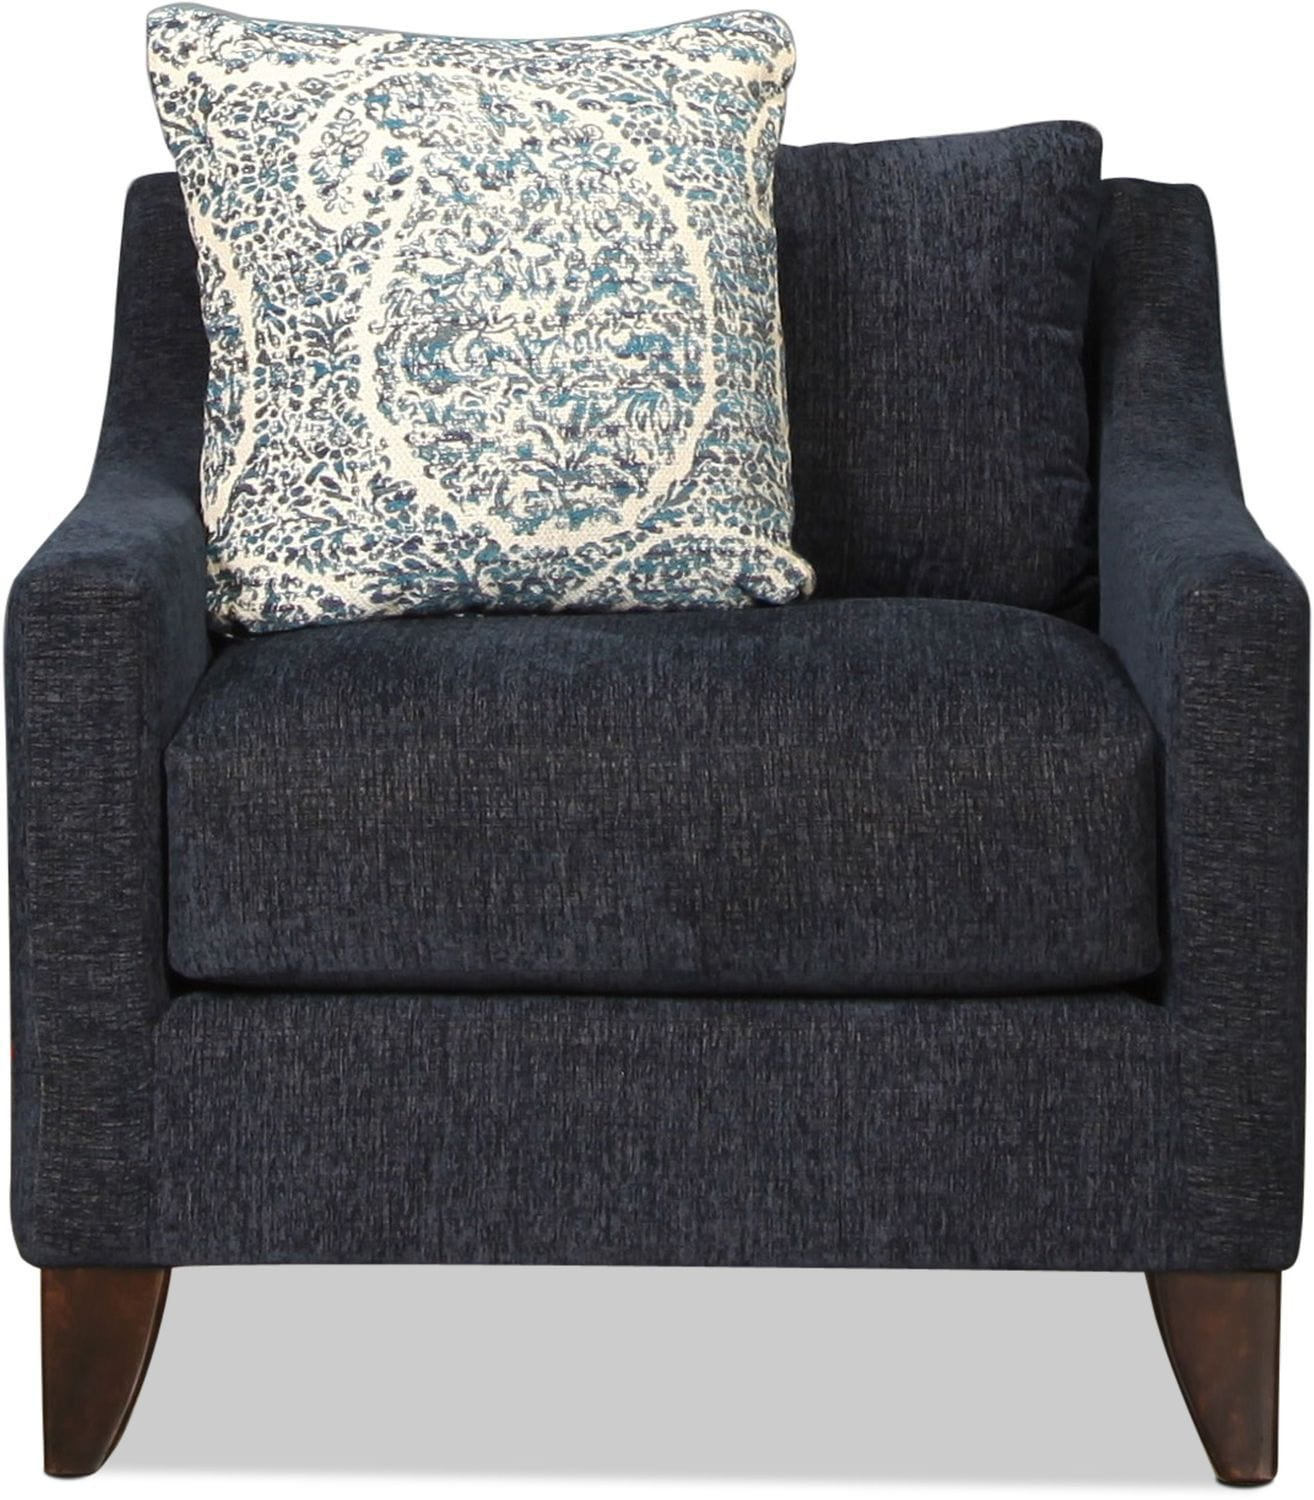 Sawyer Accent Chair - Indigo